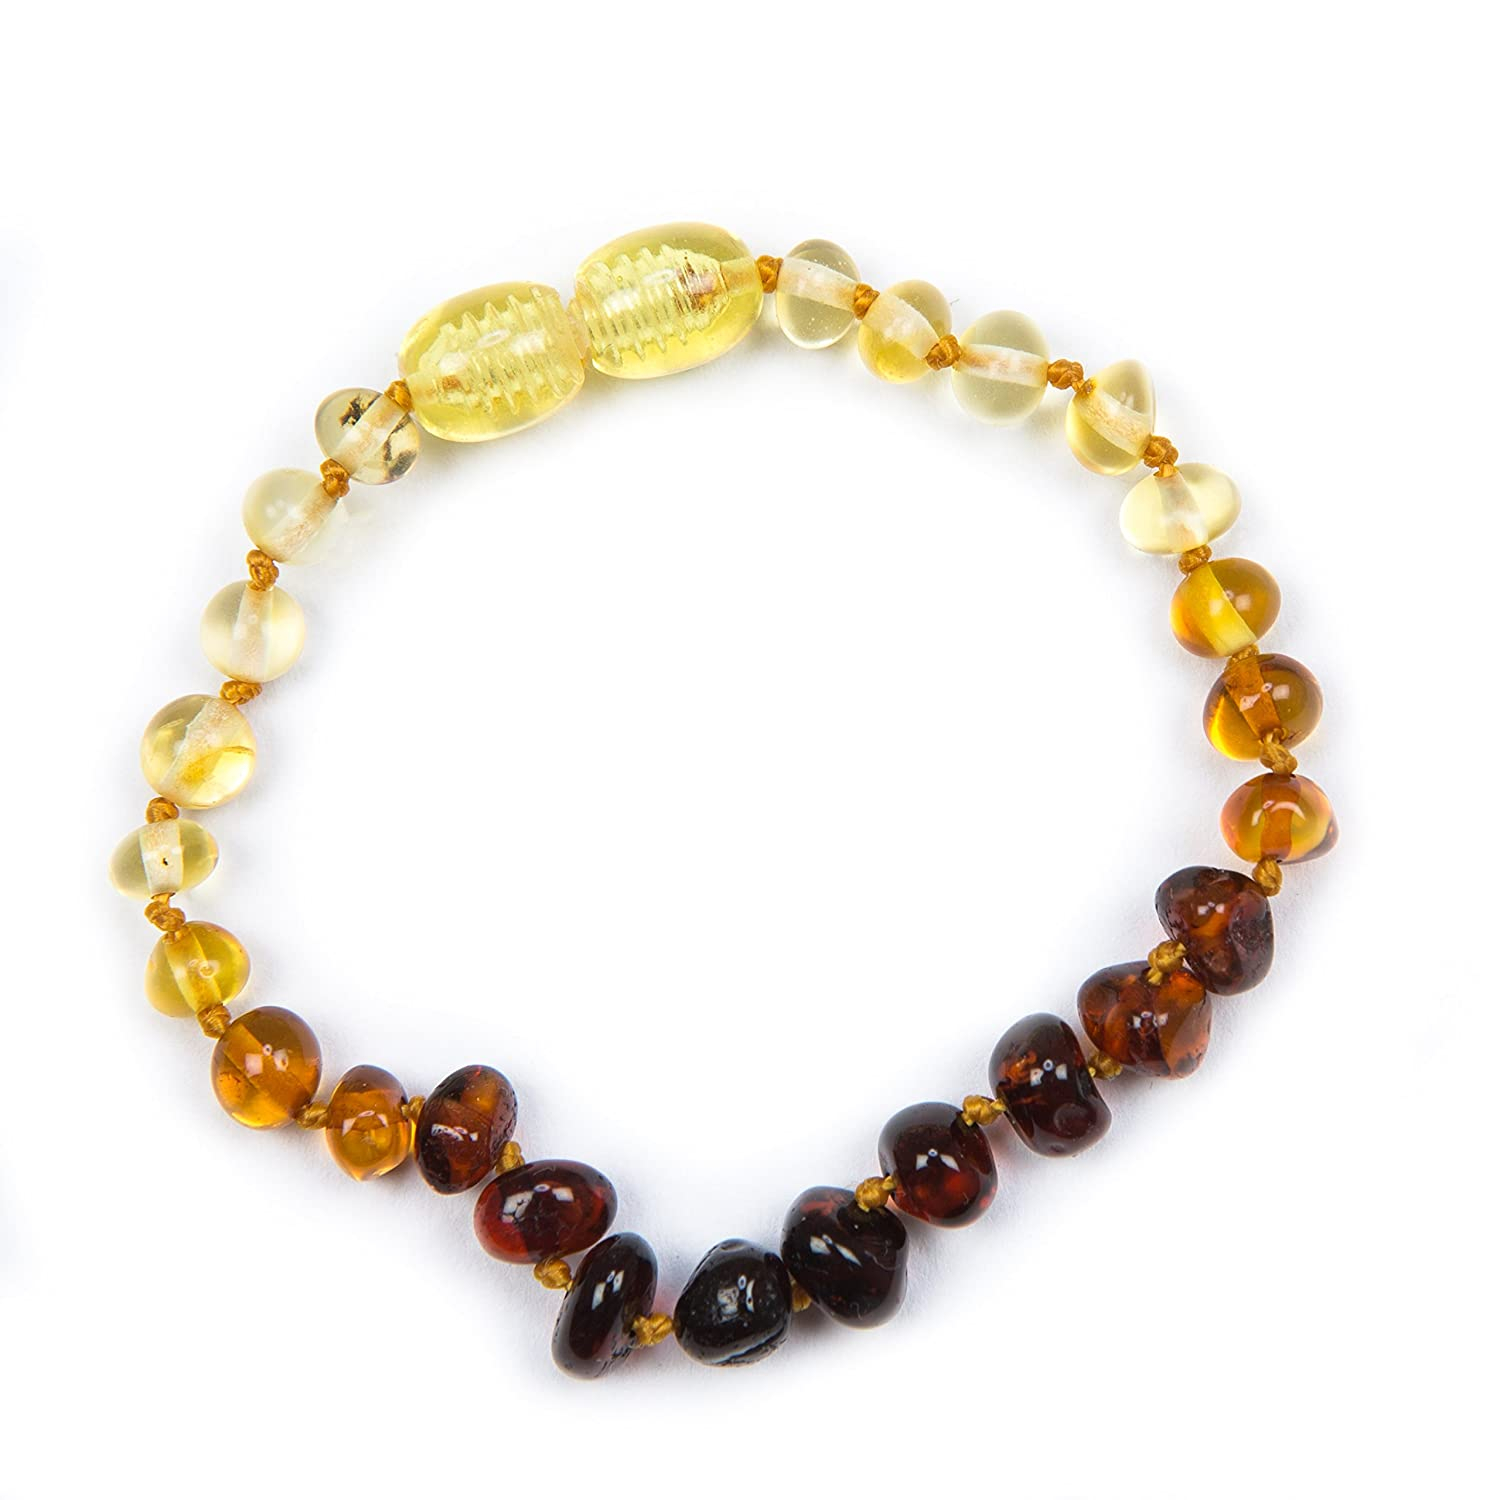 100% Genuine Baltic Amber Anklet Bracelet Ombre sizes 12cm 13cm 14cm 15cm 16cm. Free UK and Fast Delivery. Money Back Guarantee Baby J's